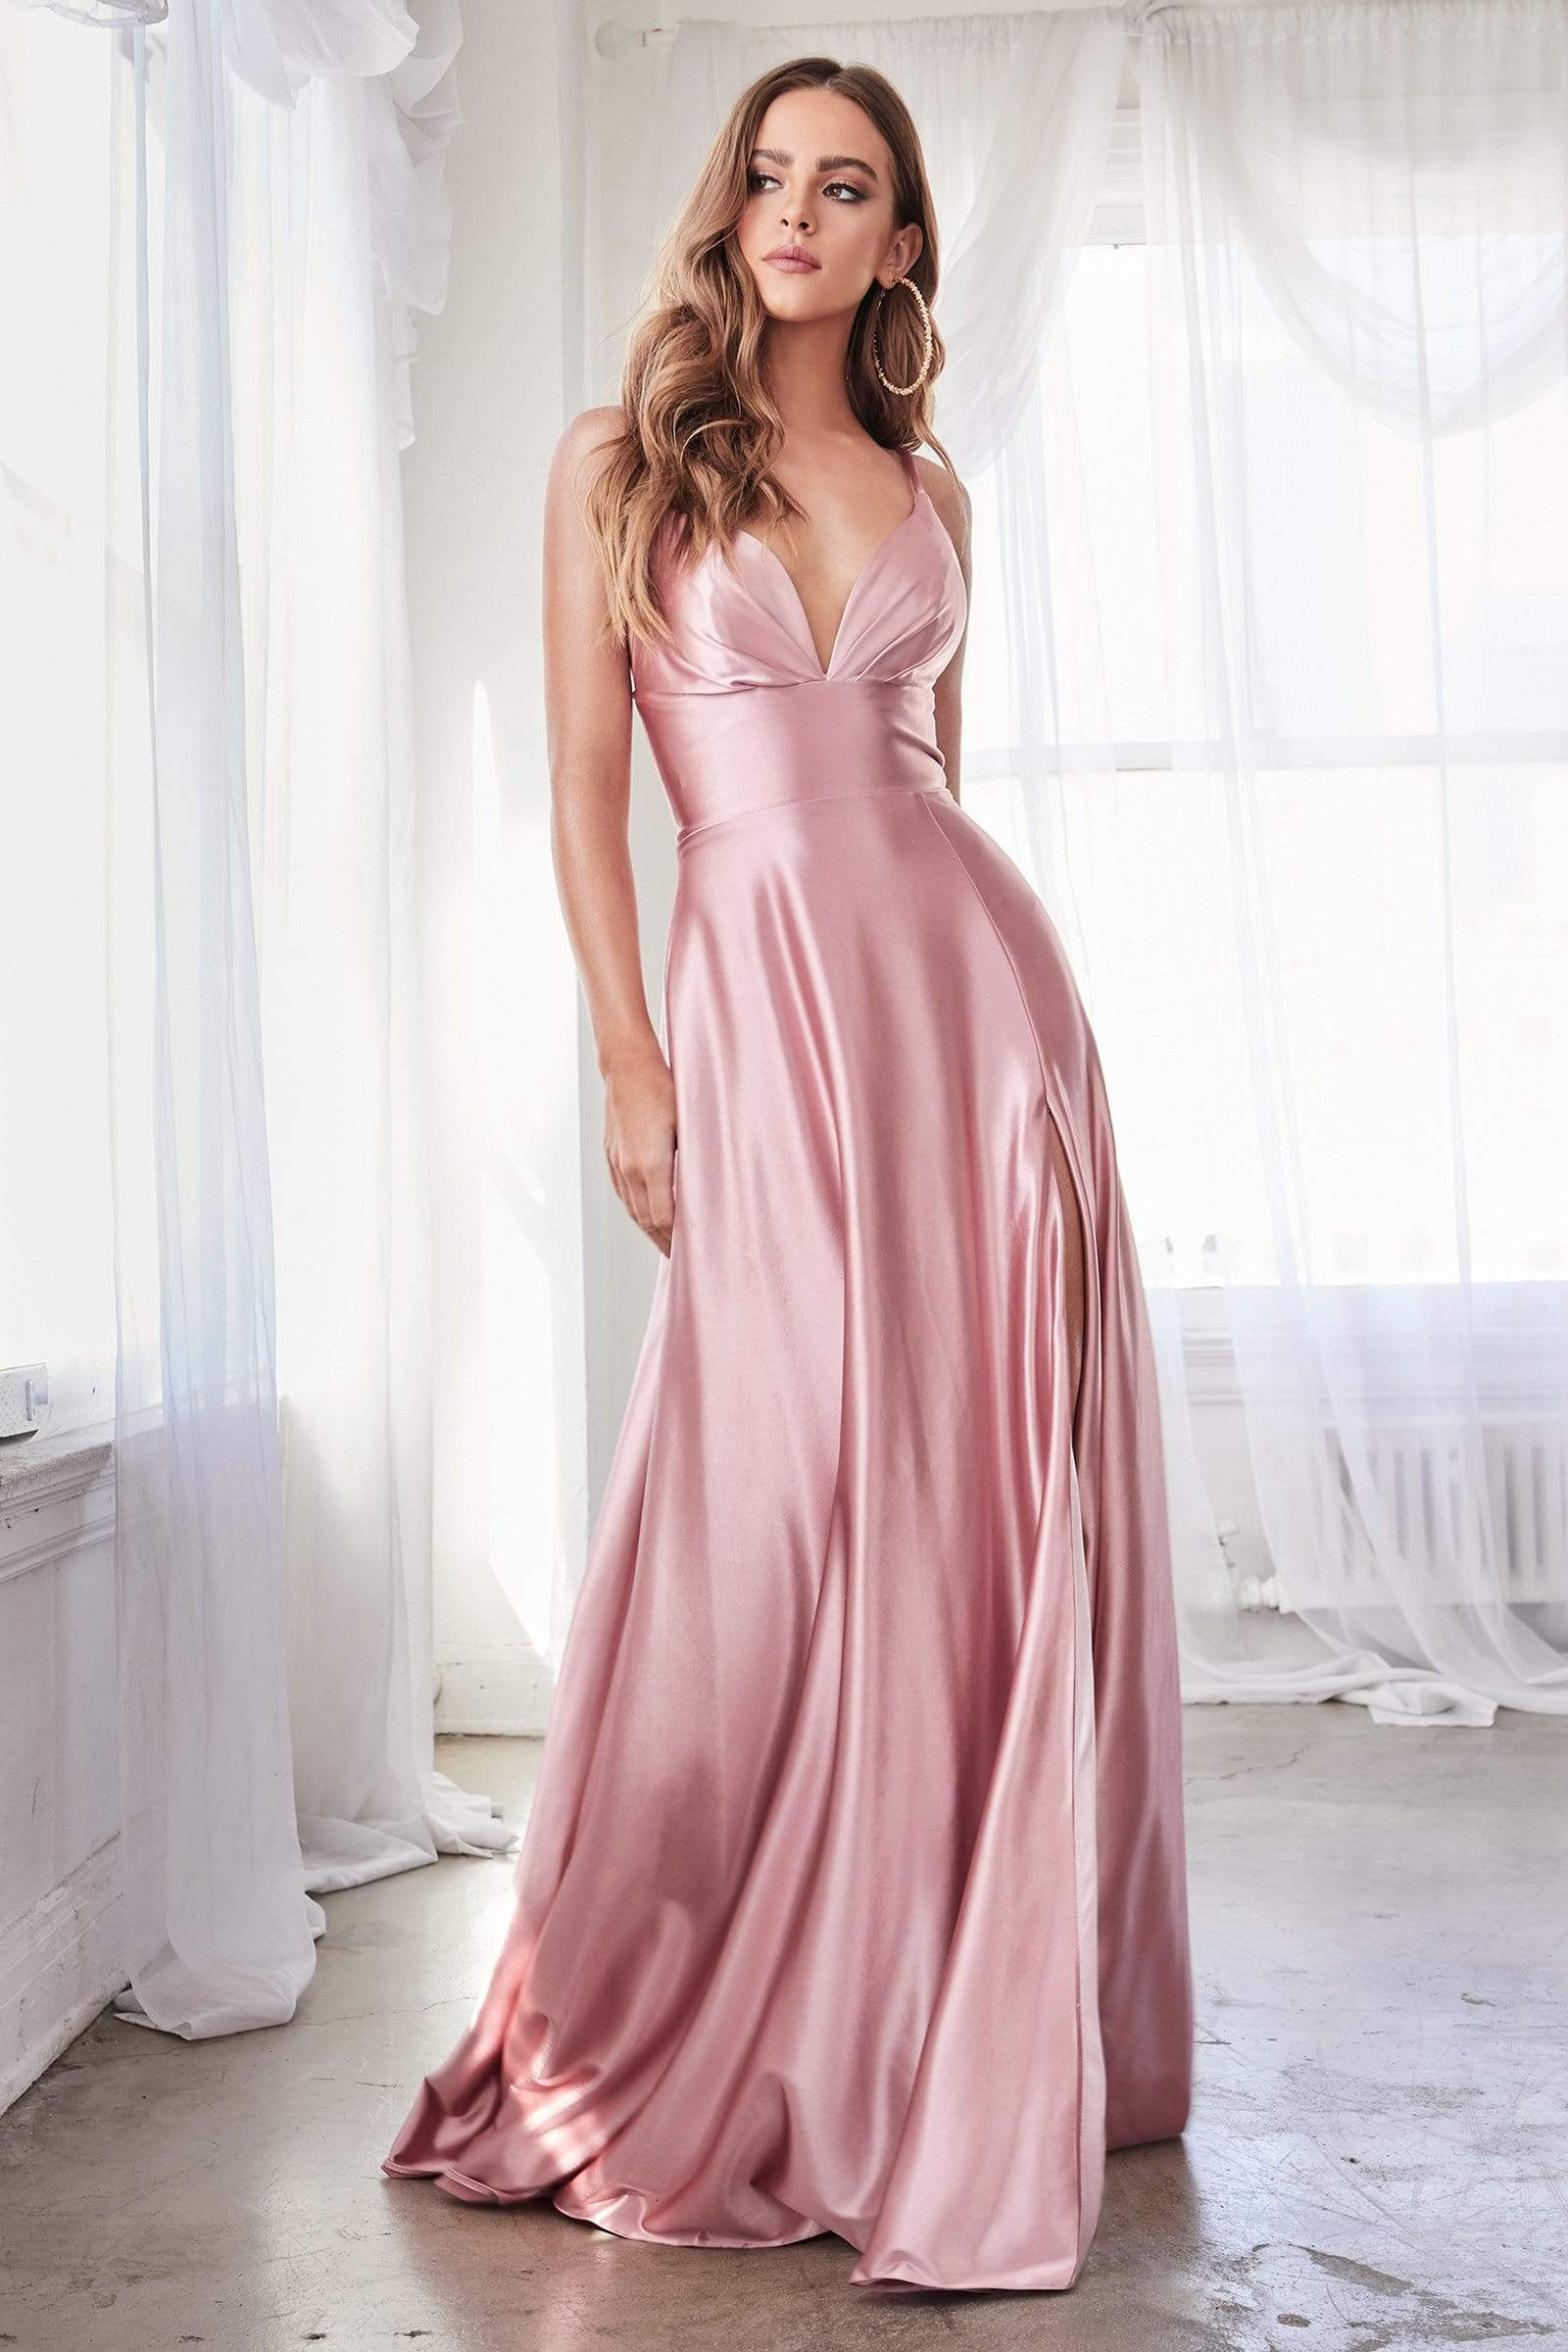 Cinderella Divine - CD903 Deep V-neck Satin A-line Gown Prom Dresses 2 / Rose